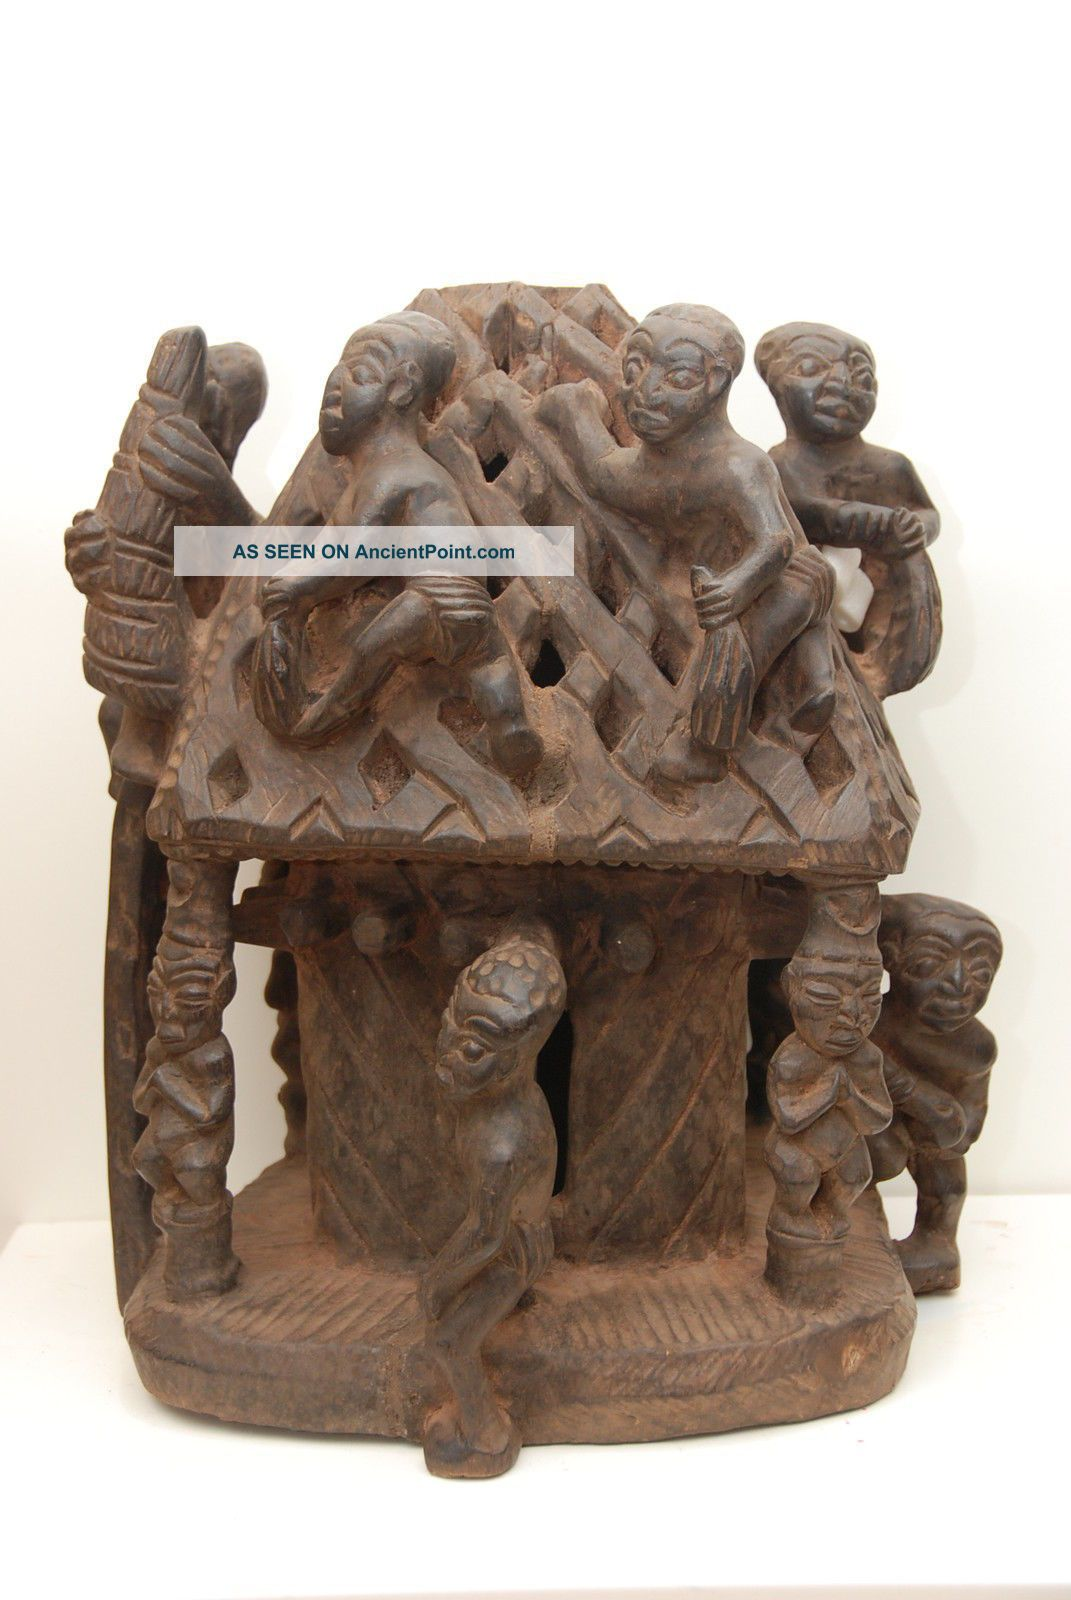 Cameroon: Tribal Very Expressive Large African Altar From The Bamun. Sculptures & Statues photo